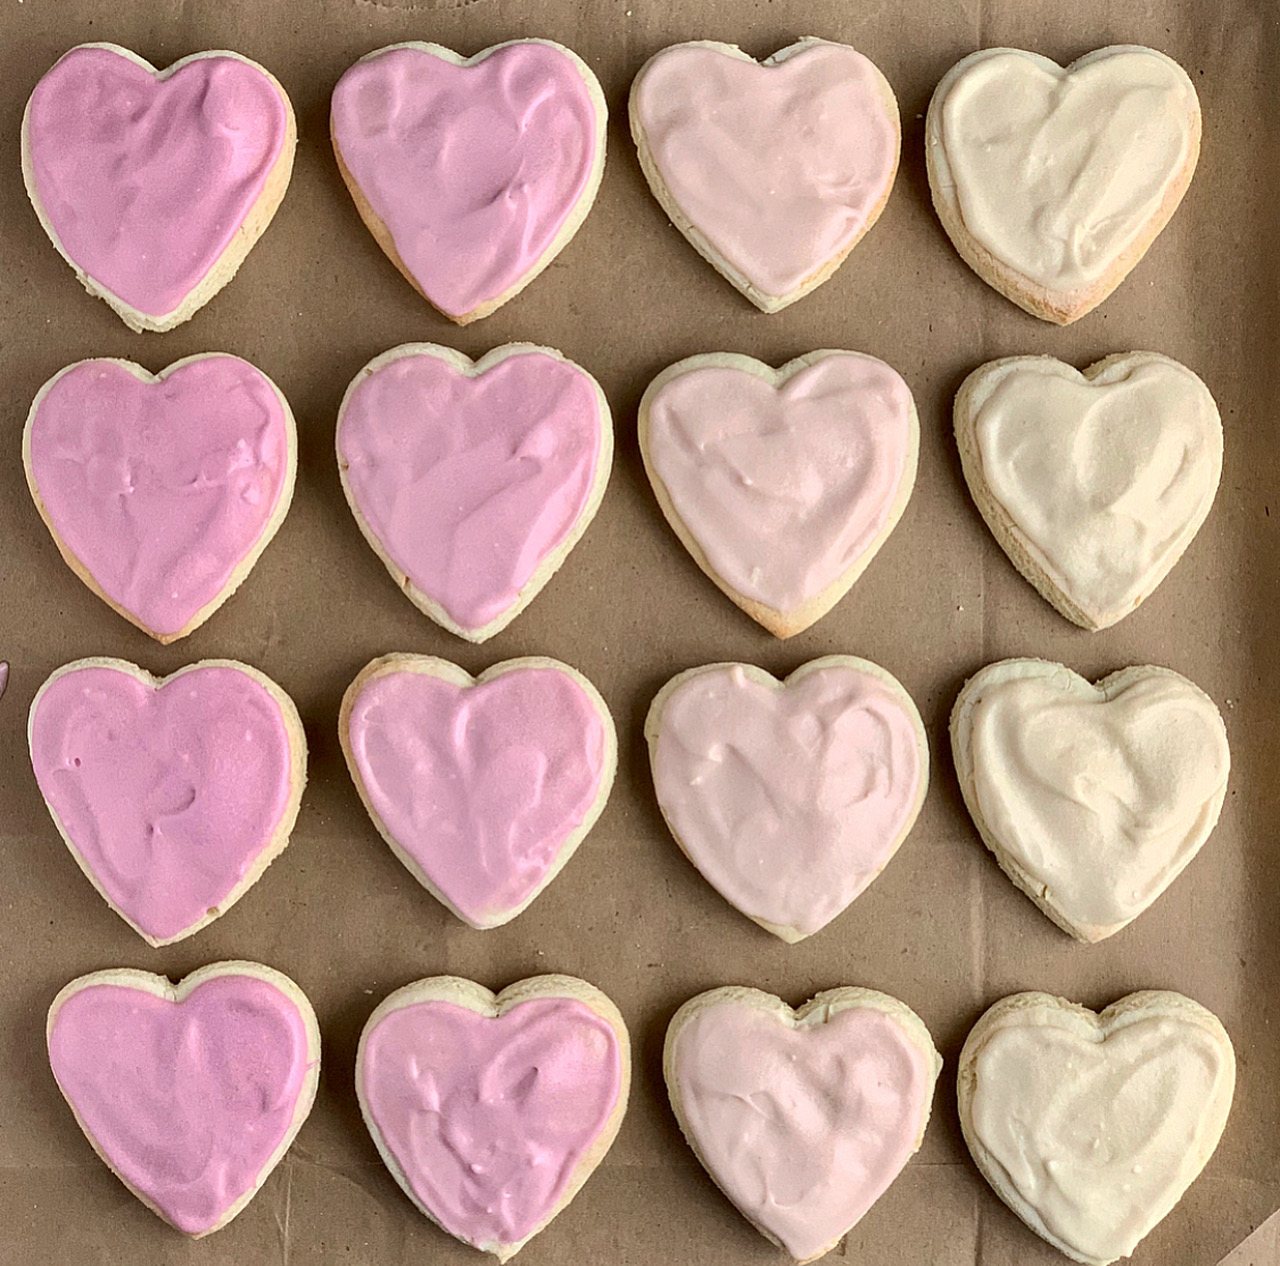 Several heart-shaped sugar cookies iced with an ombre coloring of pink to very light pink